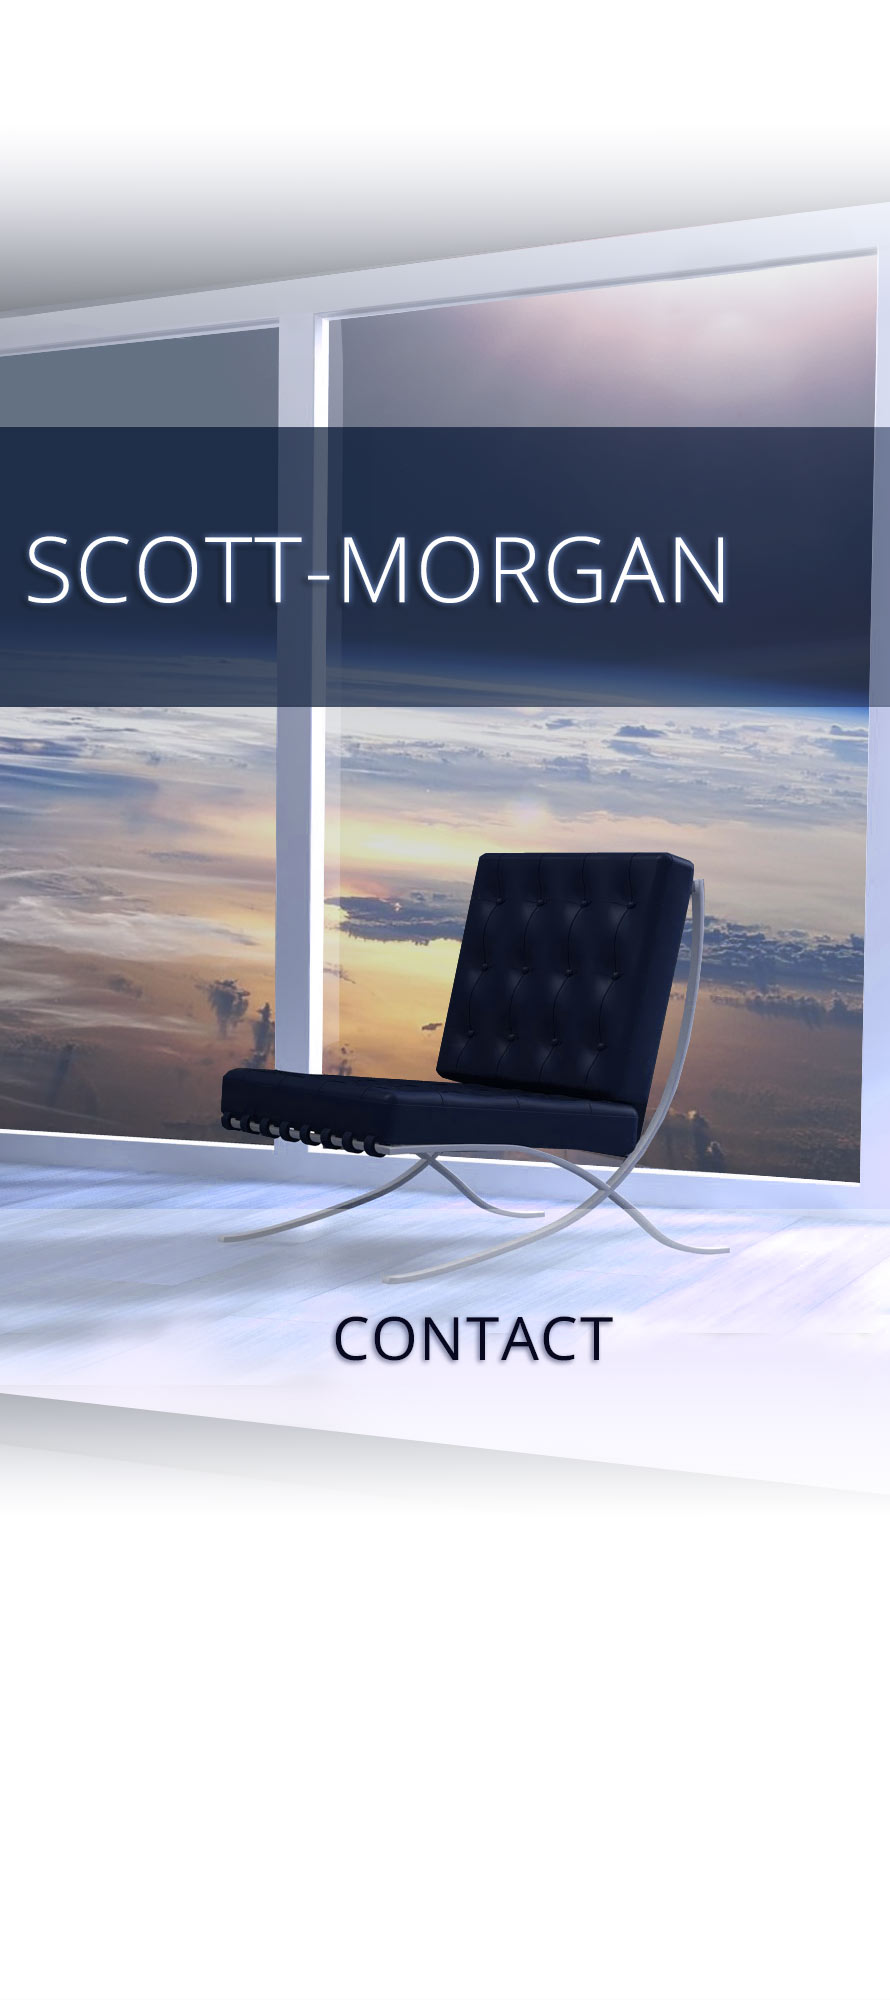 Contact Peter Scott Morgan